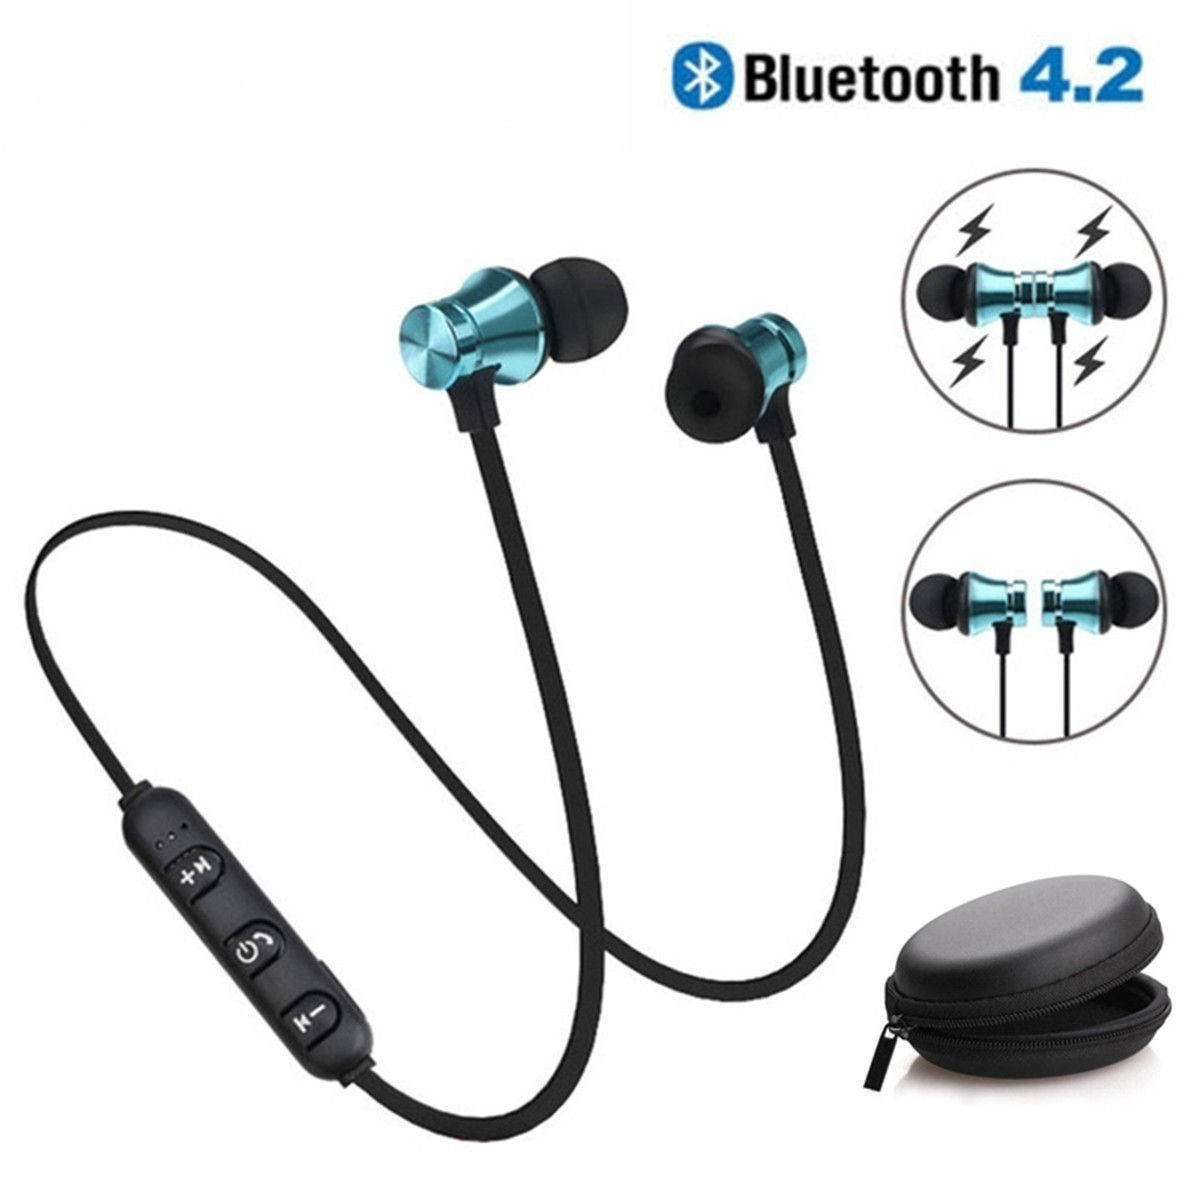 Magnetic Wireless Bluetooth Earphone XT11 Music Headset Phone Neckband Sport Earbuds Earphone With Mic For IPhone Samsung